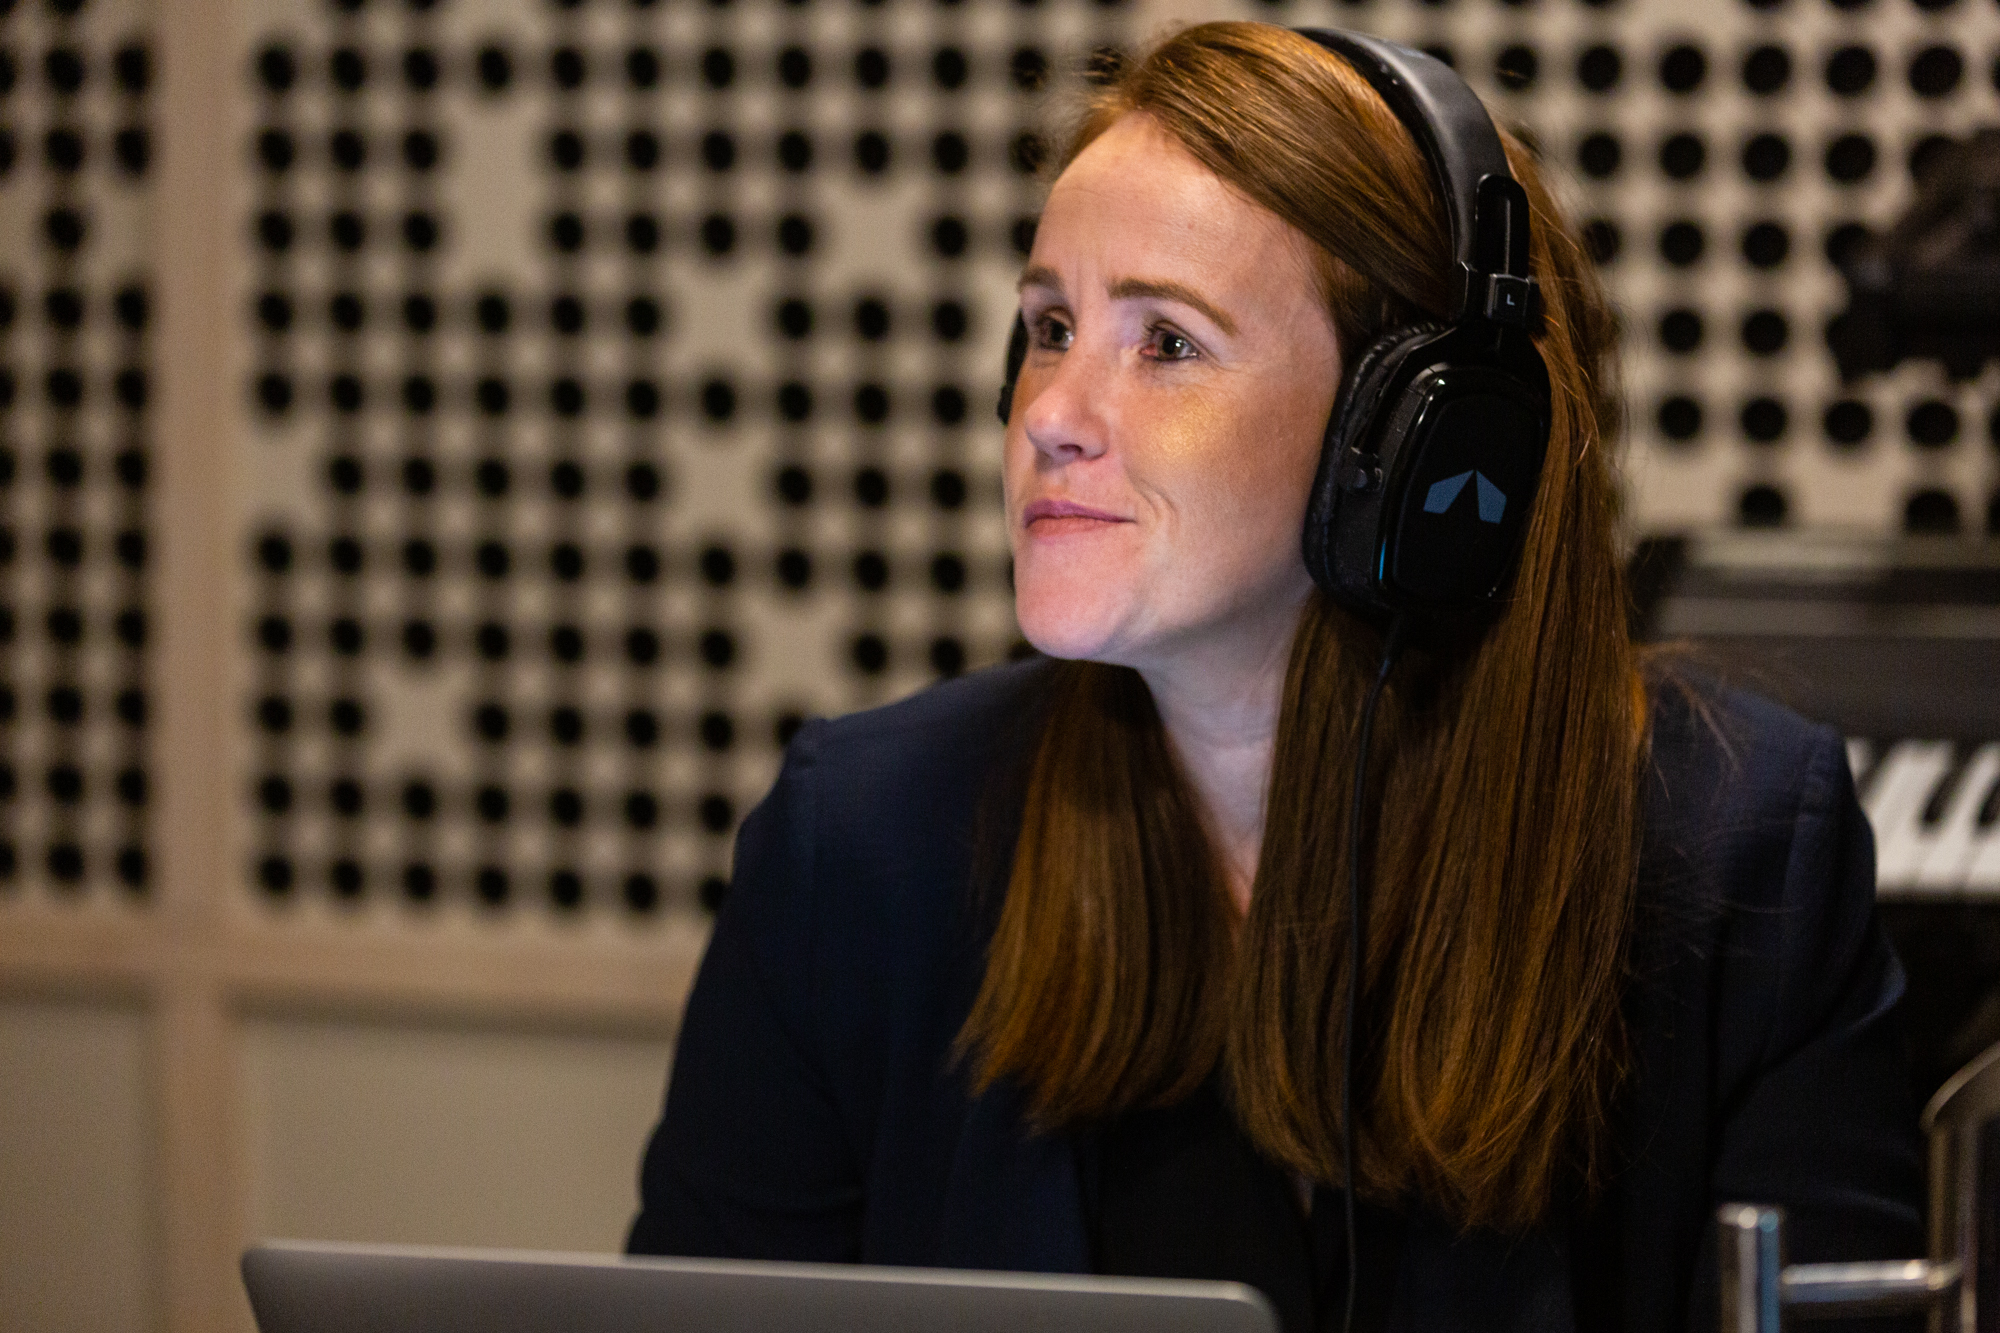 Image of Nicola Cosgrove co-founder of Hearsay The Legal Podcast and co-founder of Assured Legal Solutions.